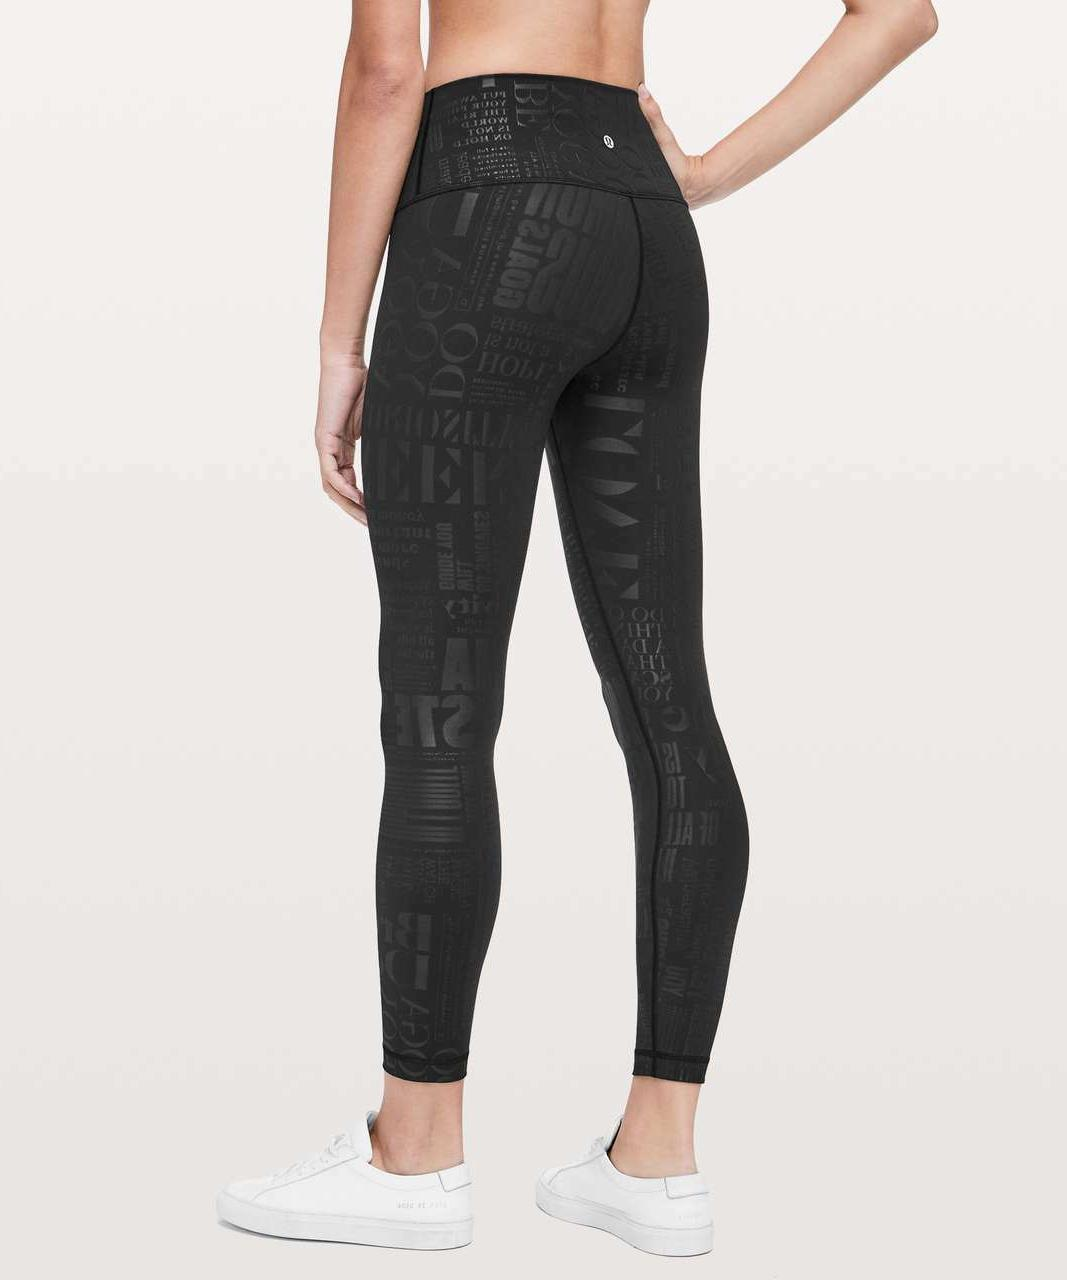 NWT Wunder Under Pant 6 7/8 20 Black